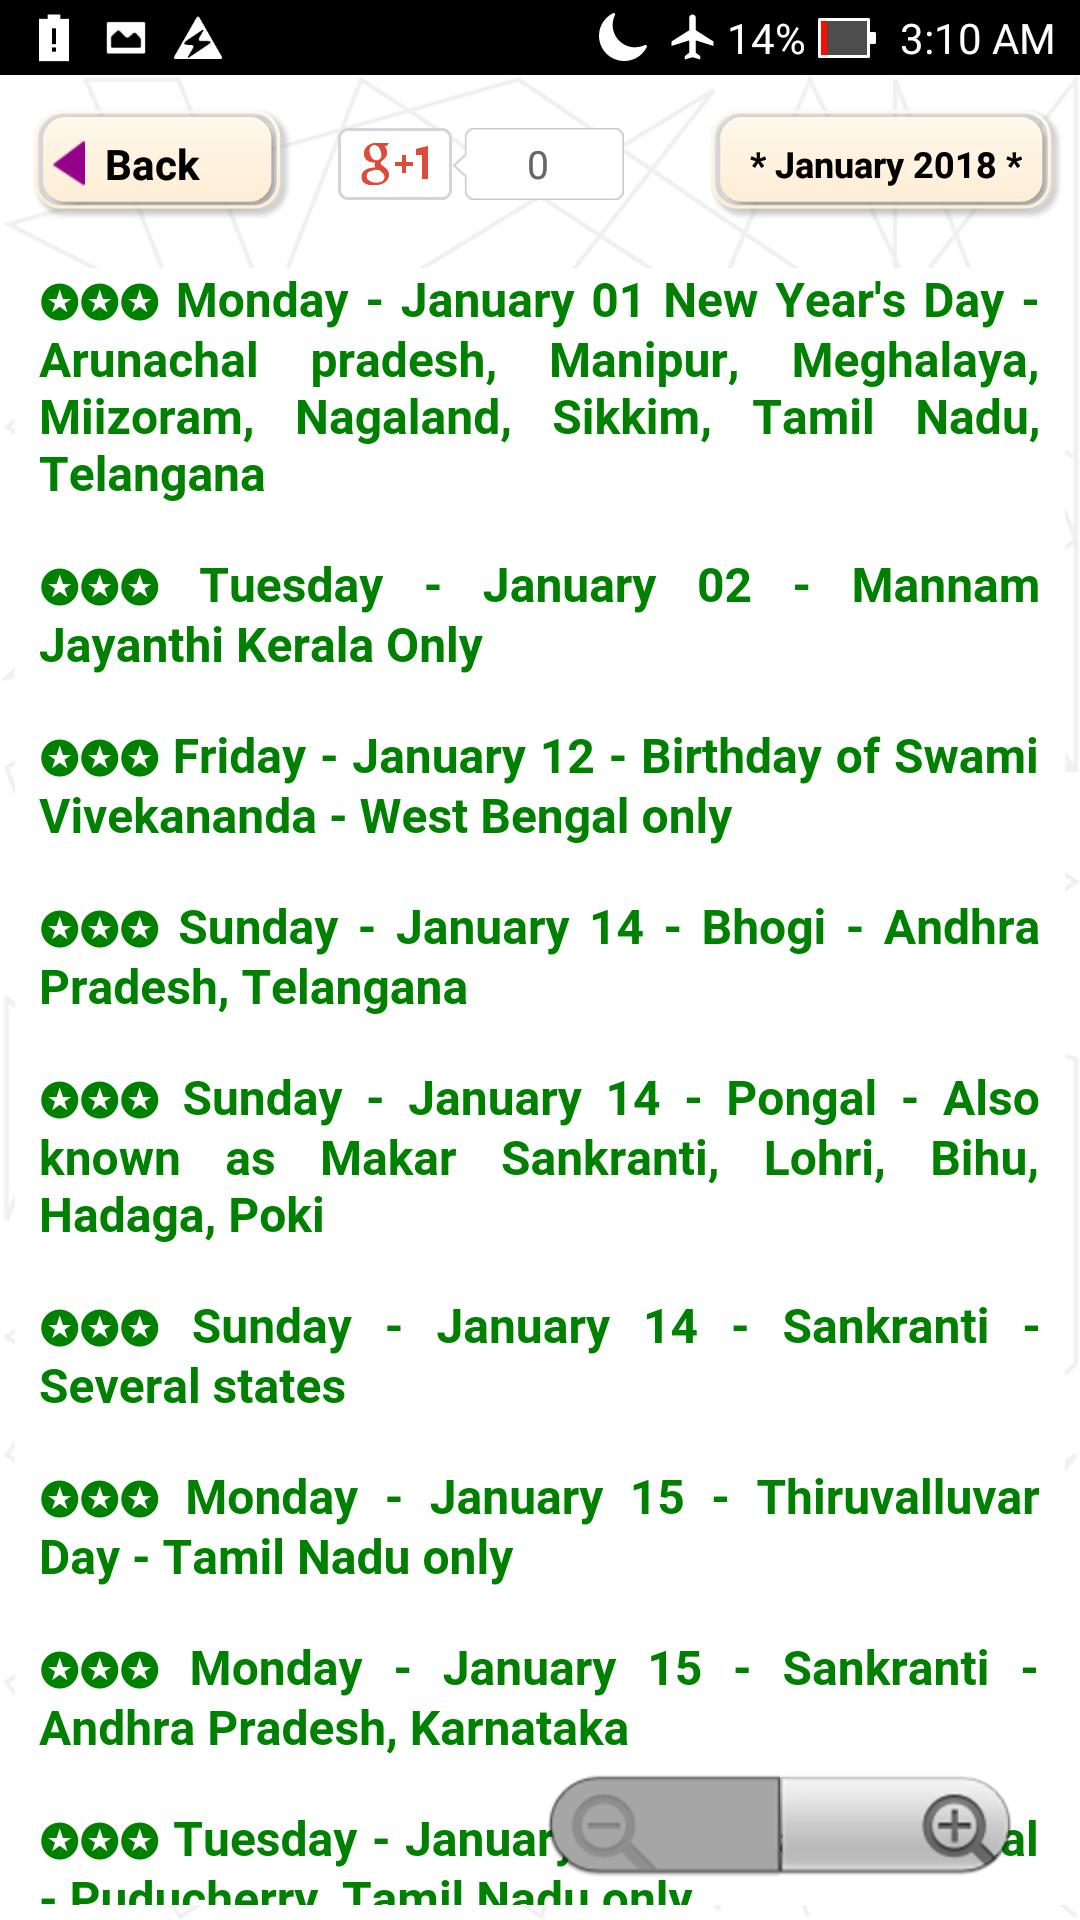 JULY 2019 TELUGU CALENDAR ANDHRA PRADESH - Hindi calendar 2019-Hindu